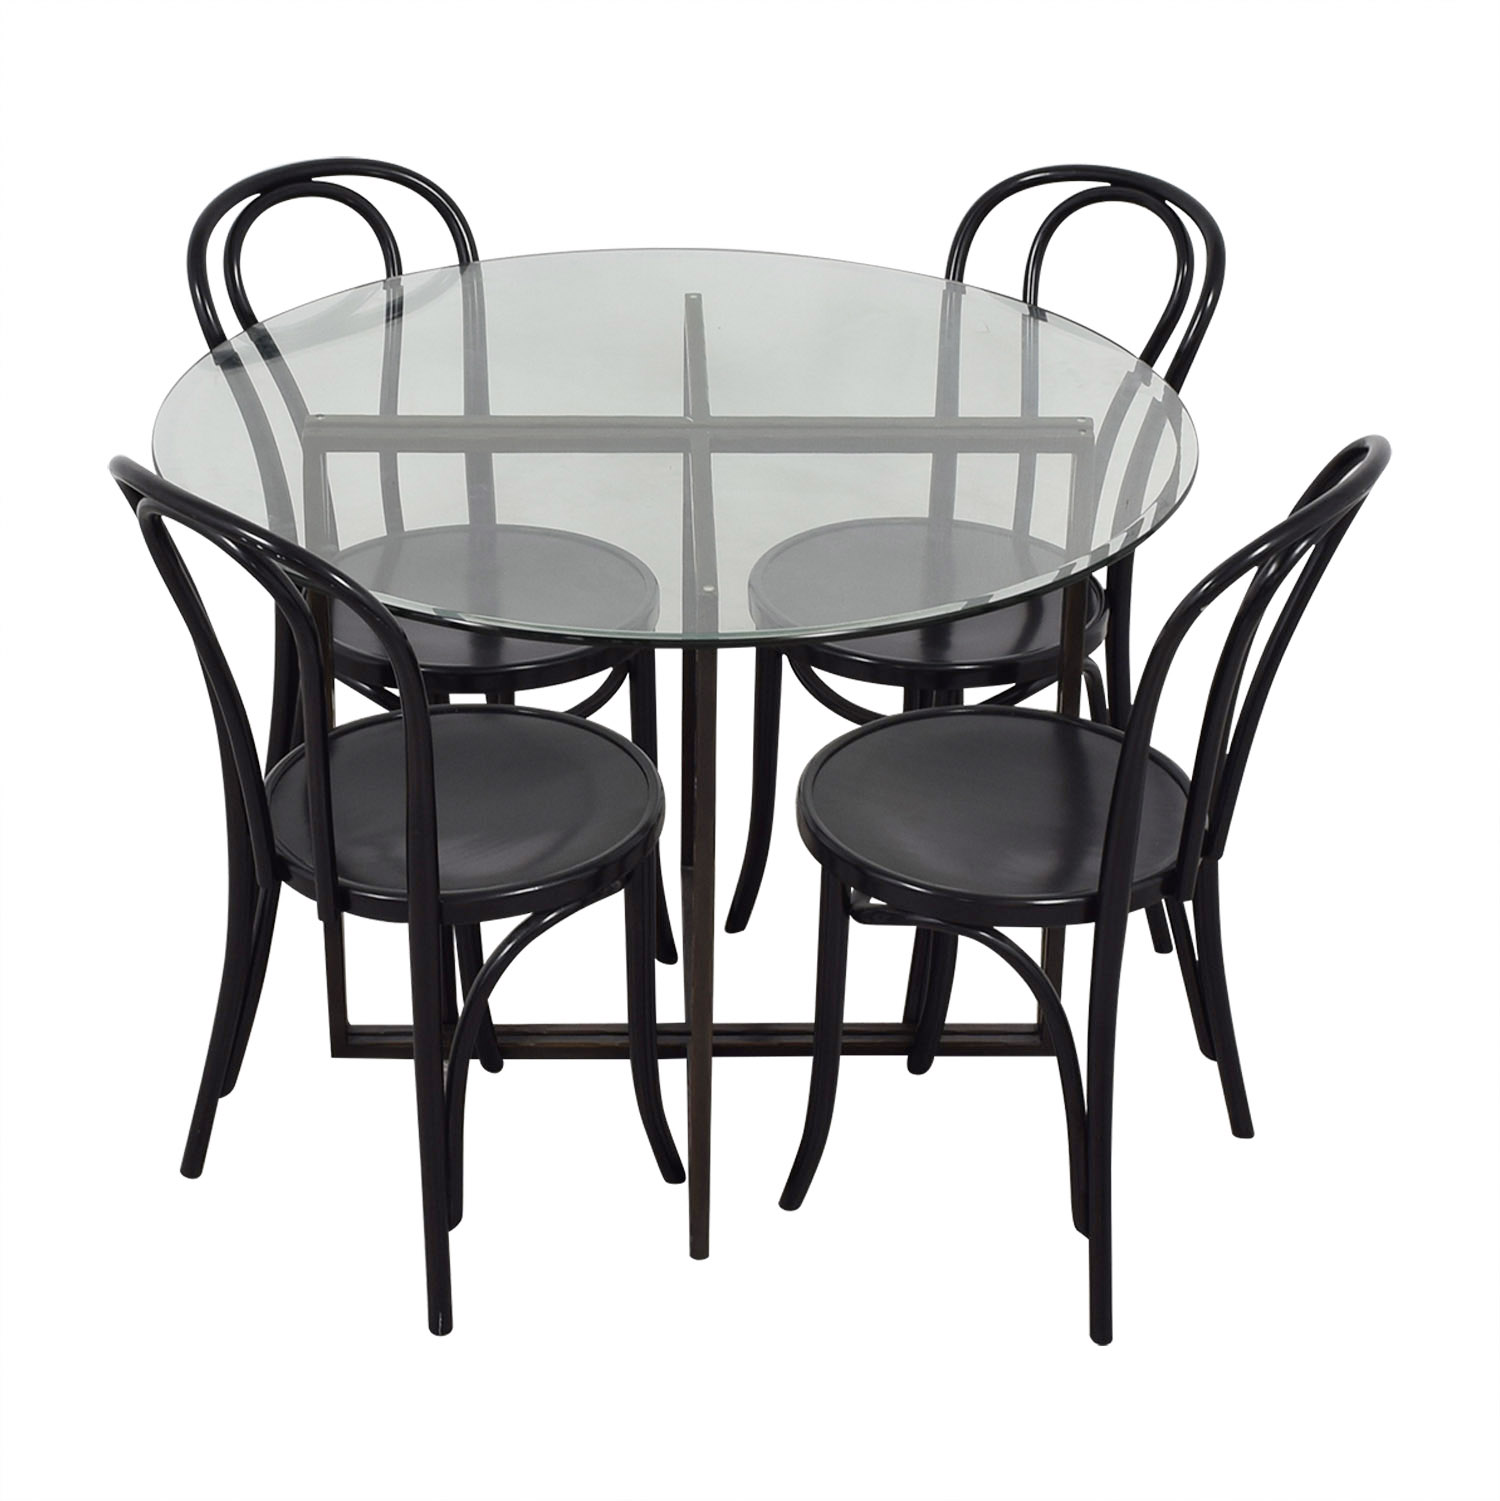 Round Glass and Wood Dining Table Set